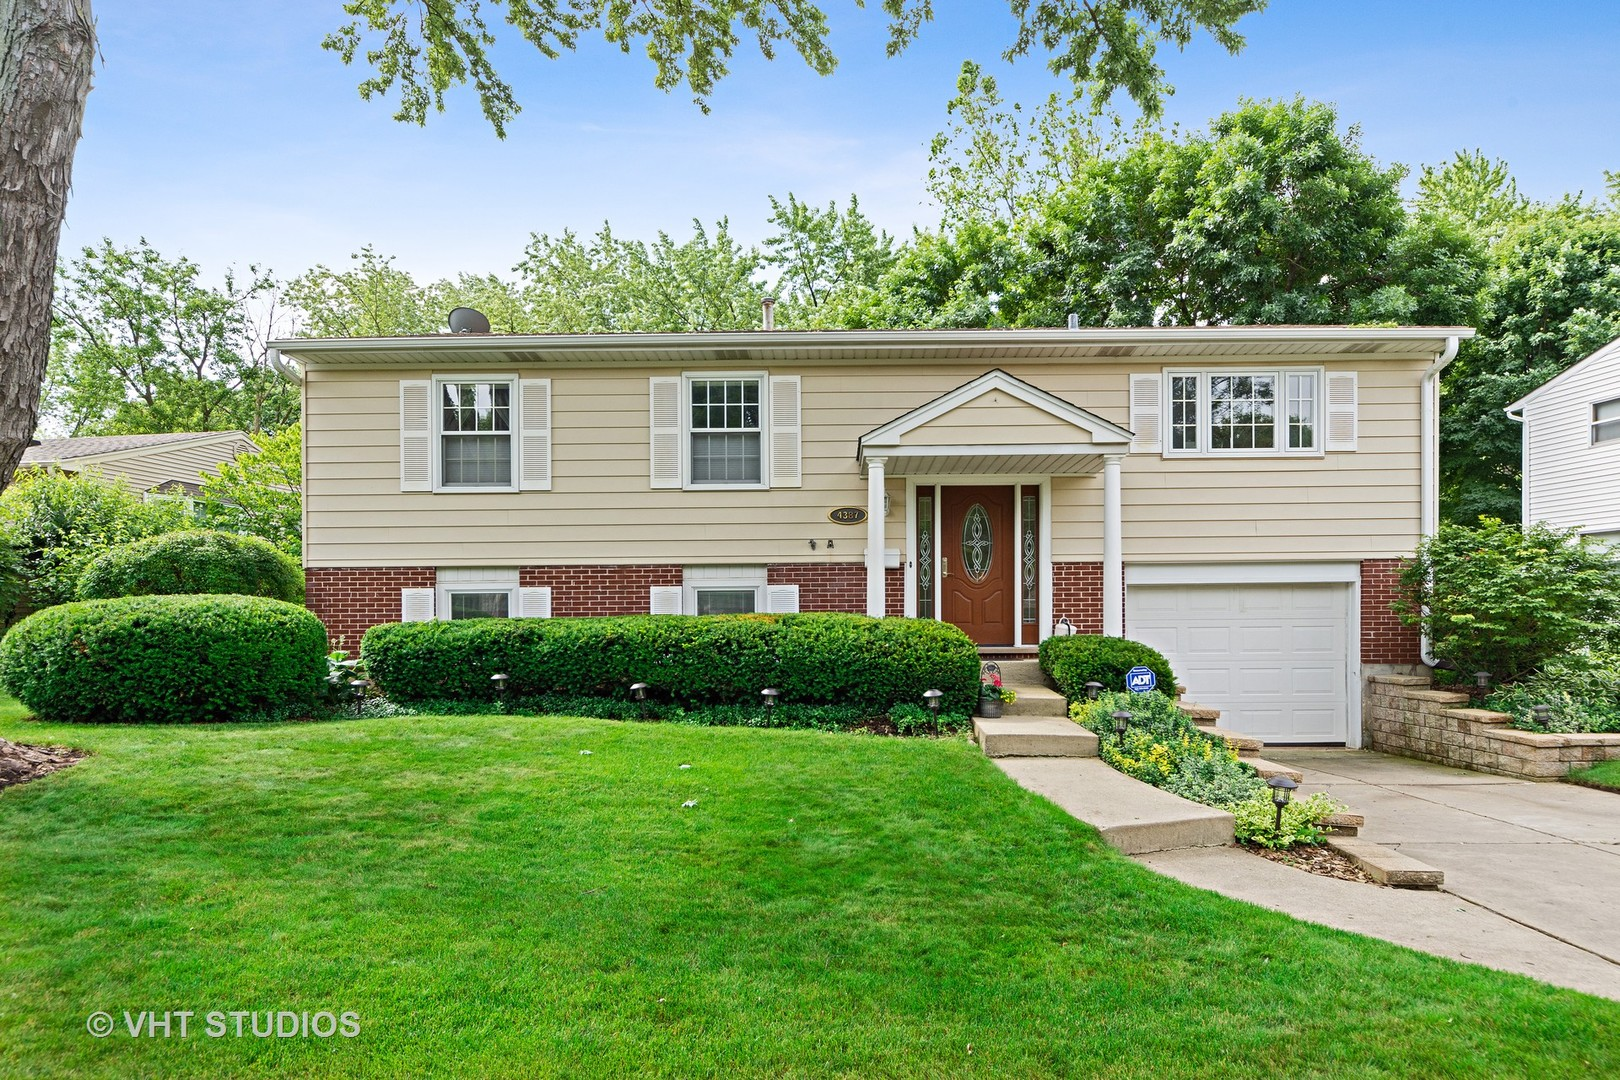 Photo of 4387 Lincoln Avenue Rolling Meadows Illinois 60008